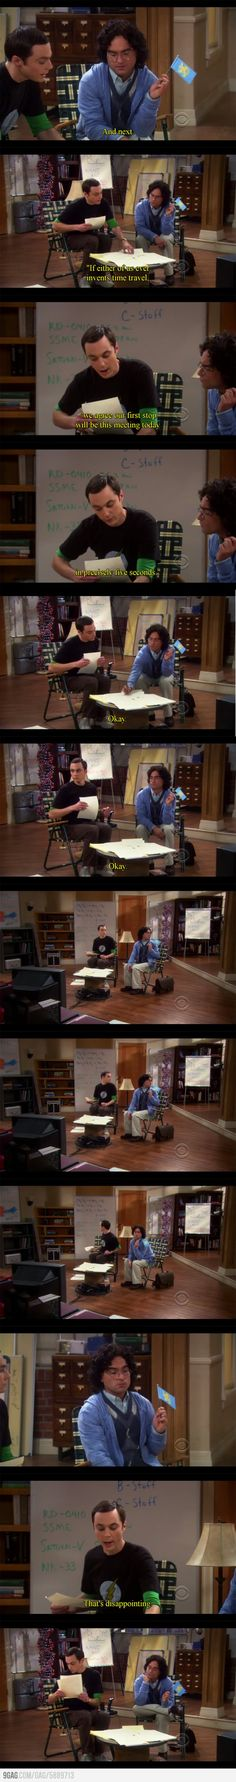 My favorite BBT scene of all time!